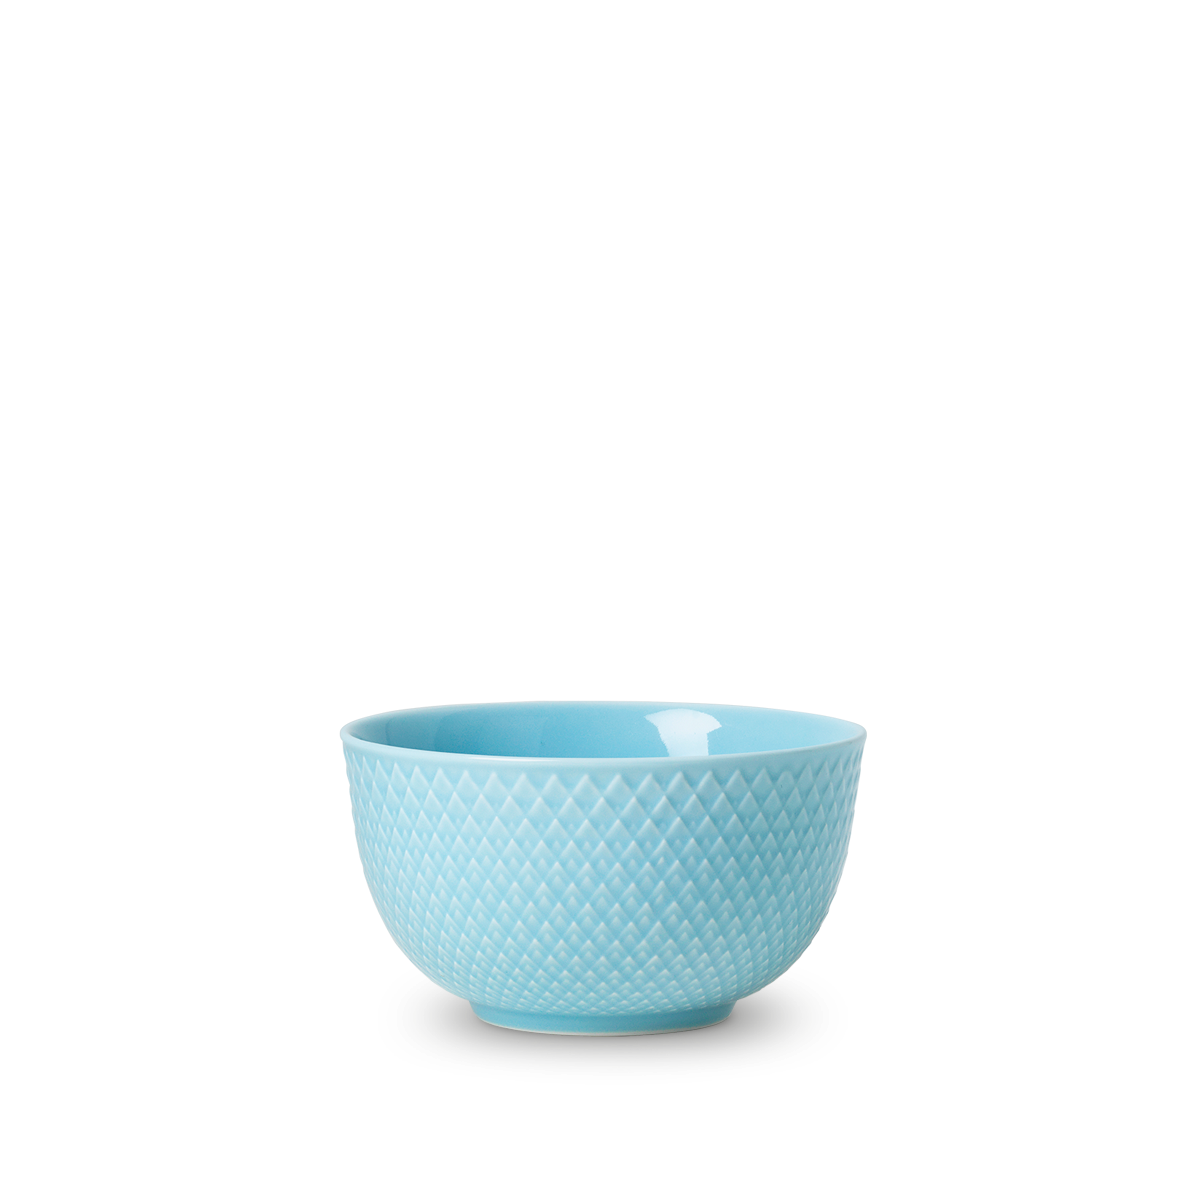 Lyngby Porcelæn - Rhombe Color Bowl Dia. 11cm - Turquoise (201900)